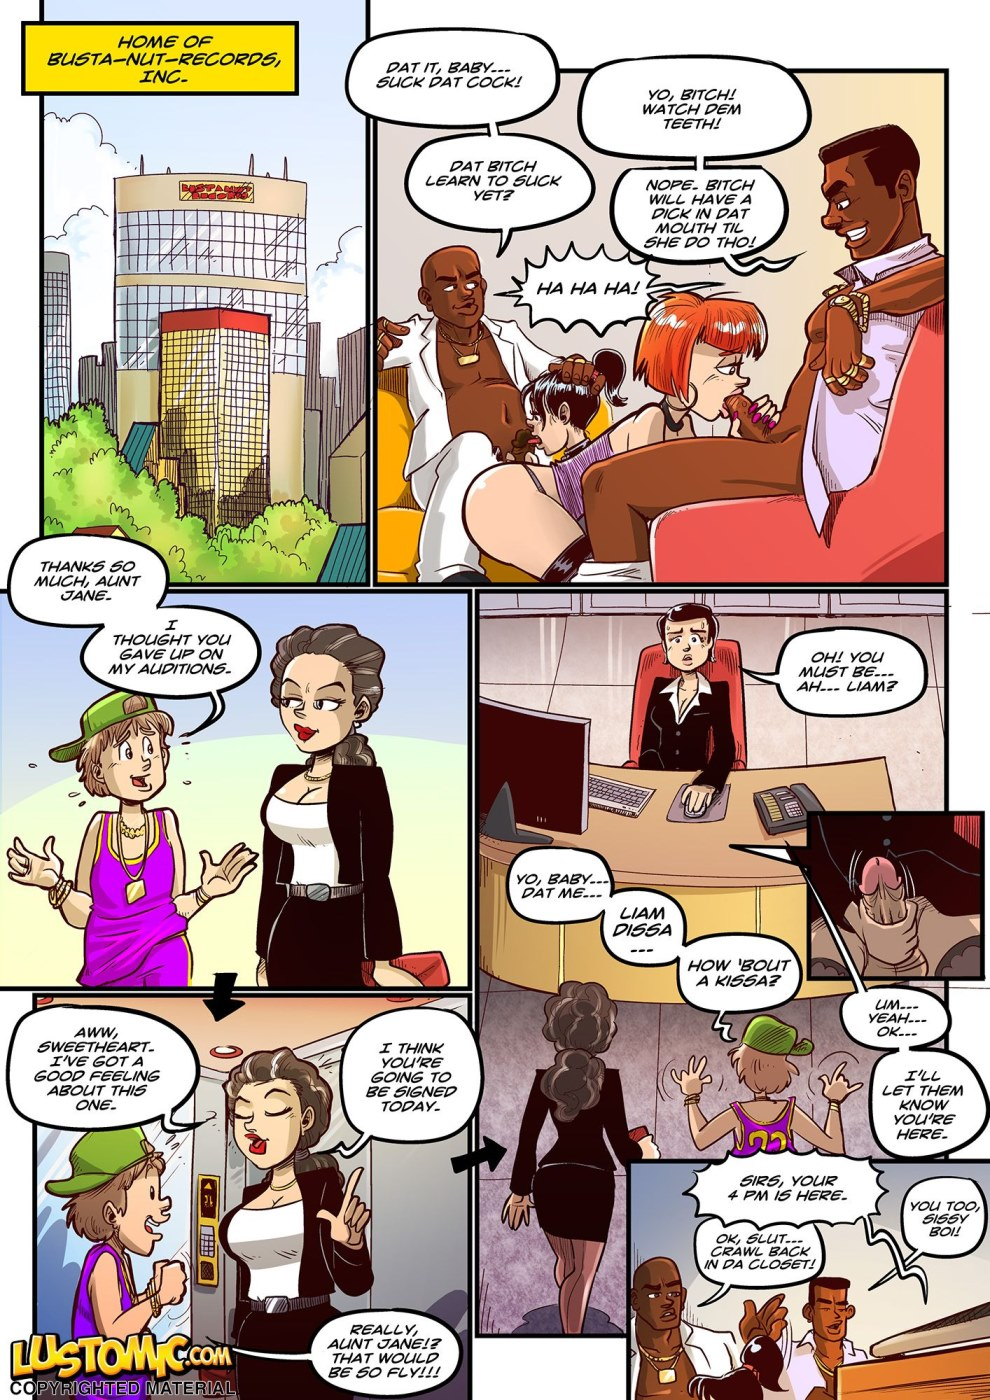 Busta Nut Records- Lustomic porn comics 8 muses